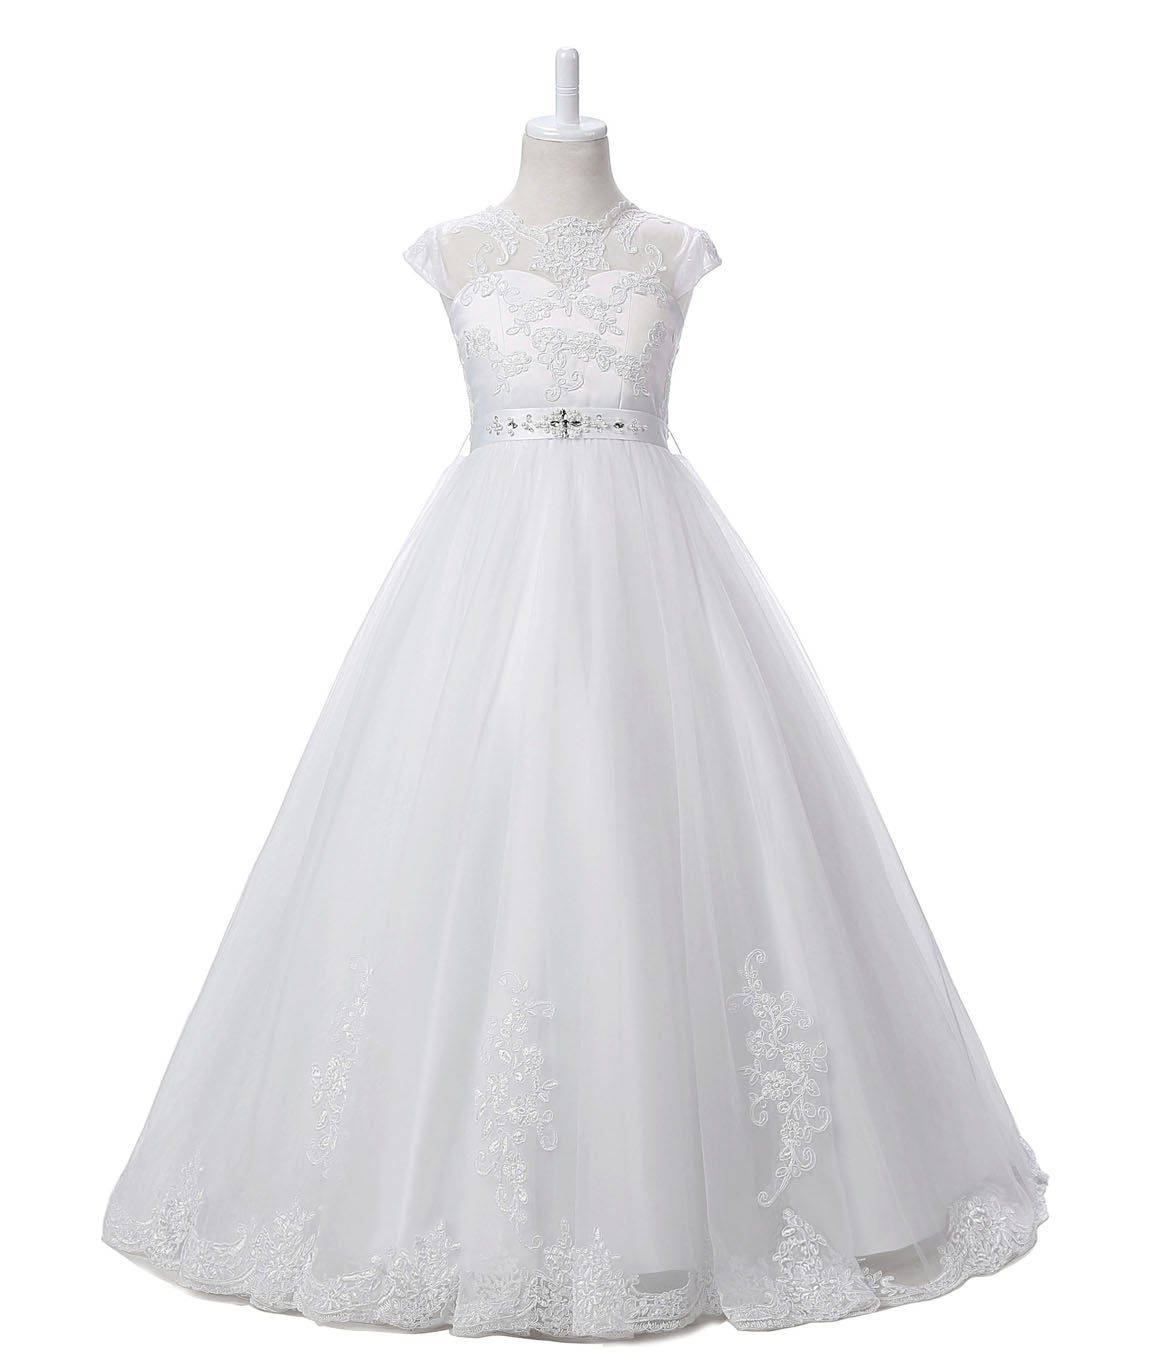 Nina Flower Girls Pageant First Communion Scoop Lace Dress White 7